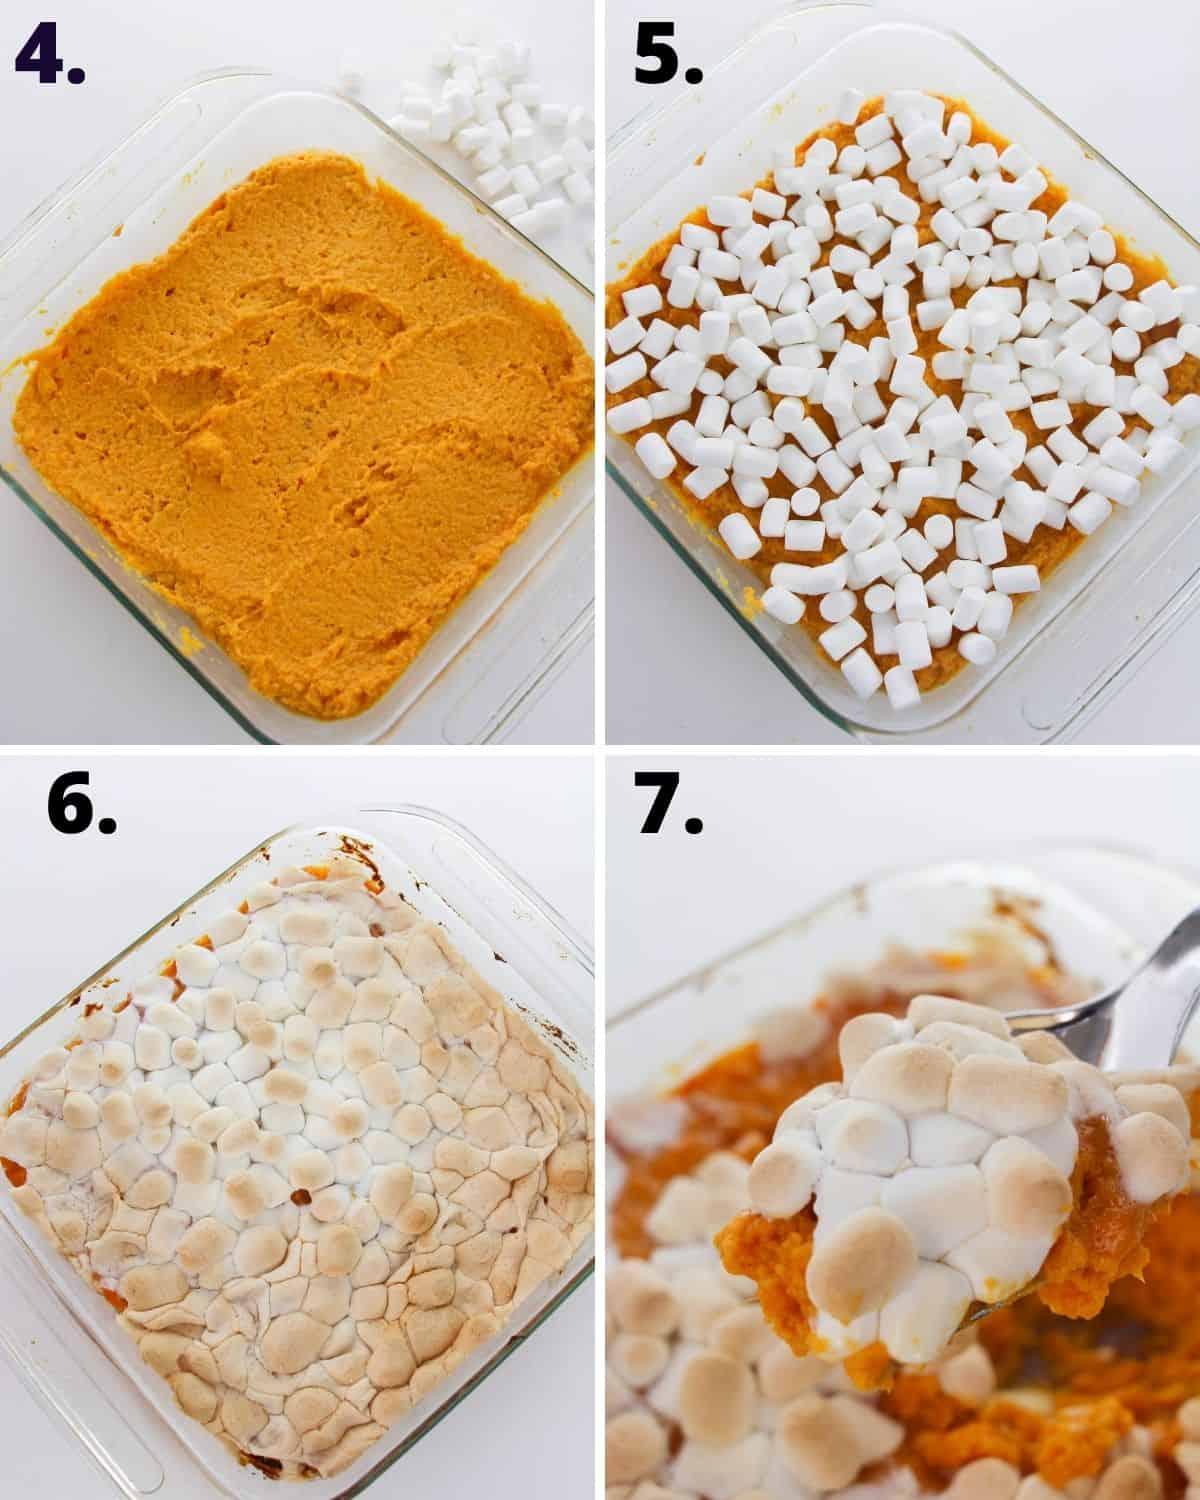 Photos of sweet potato puree in a casserole dish, then topped with marshmallows, baked and served.